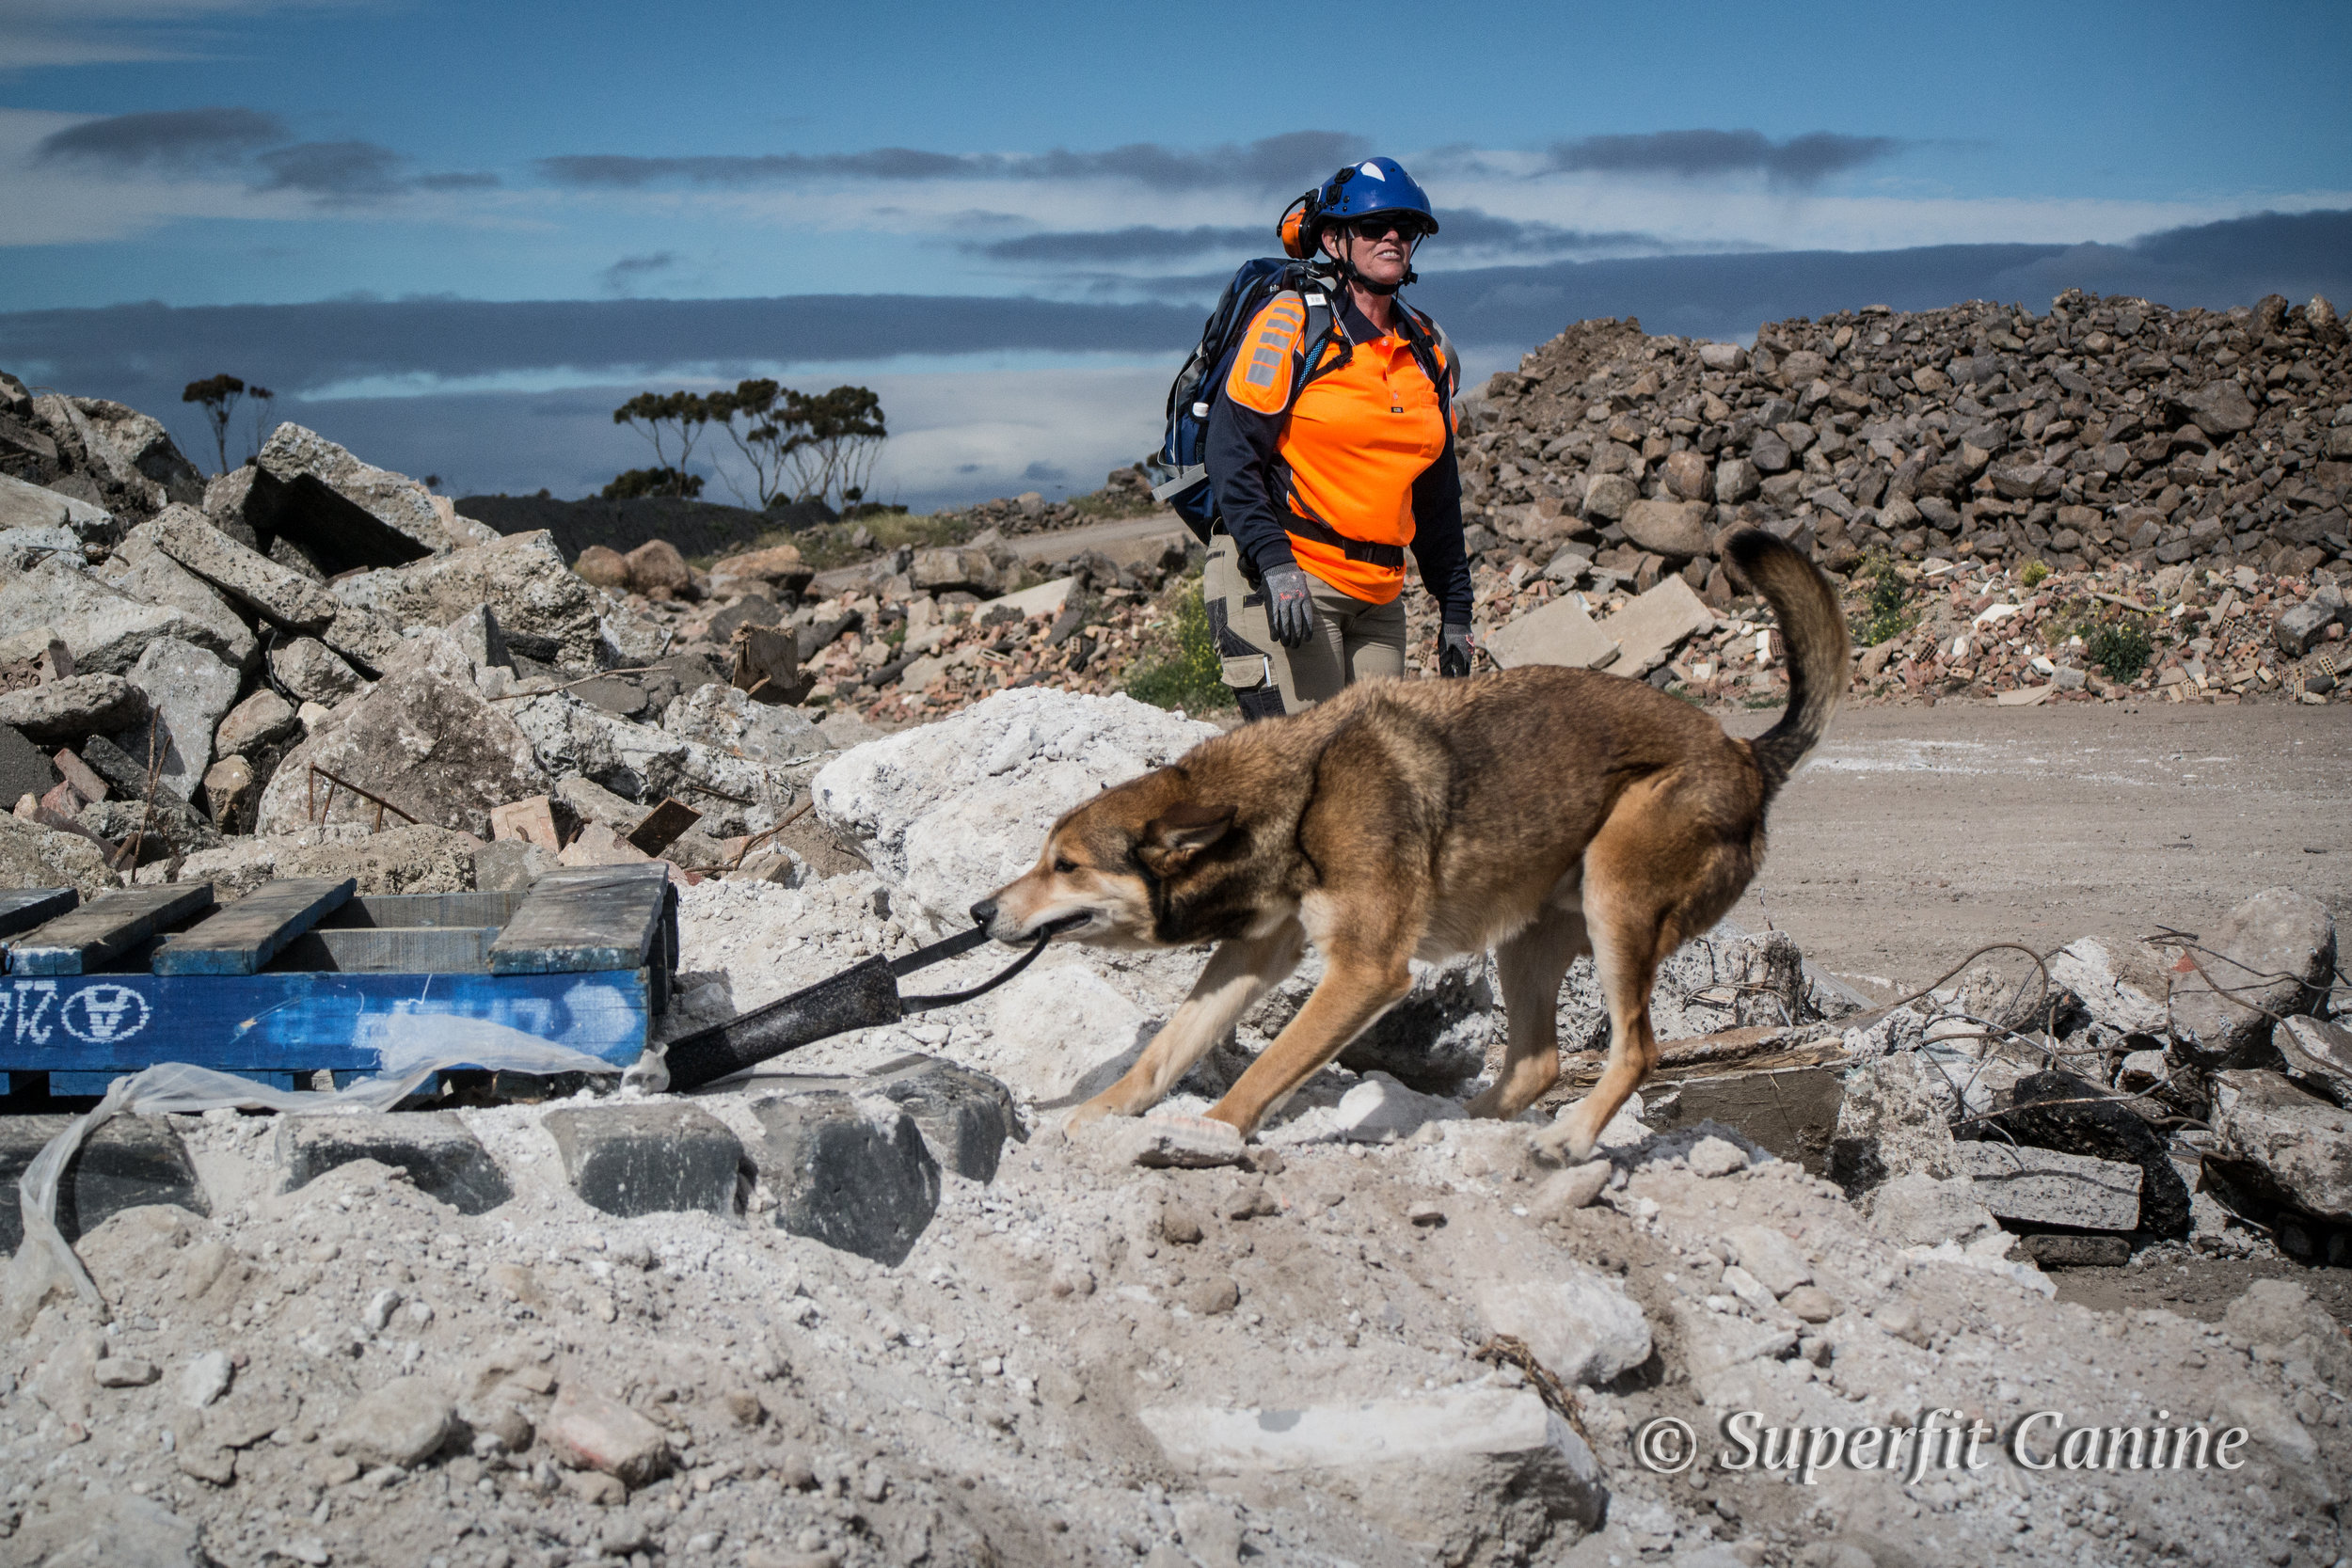 K9 Boof (Search Dogs Sydney) is rewarded for a find with handler Adele Jago